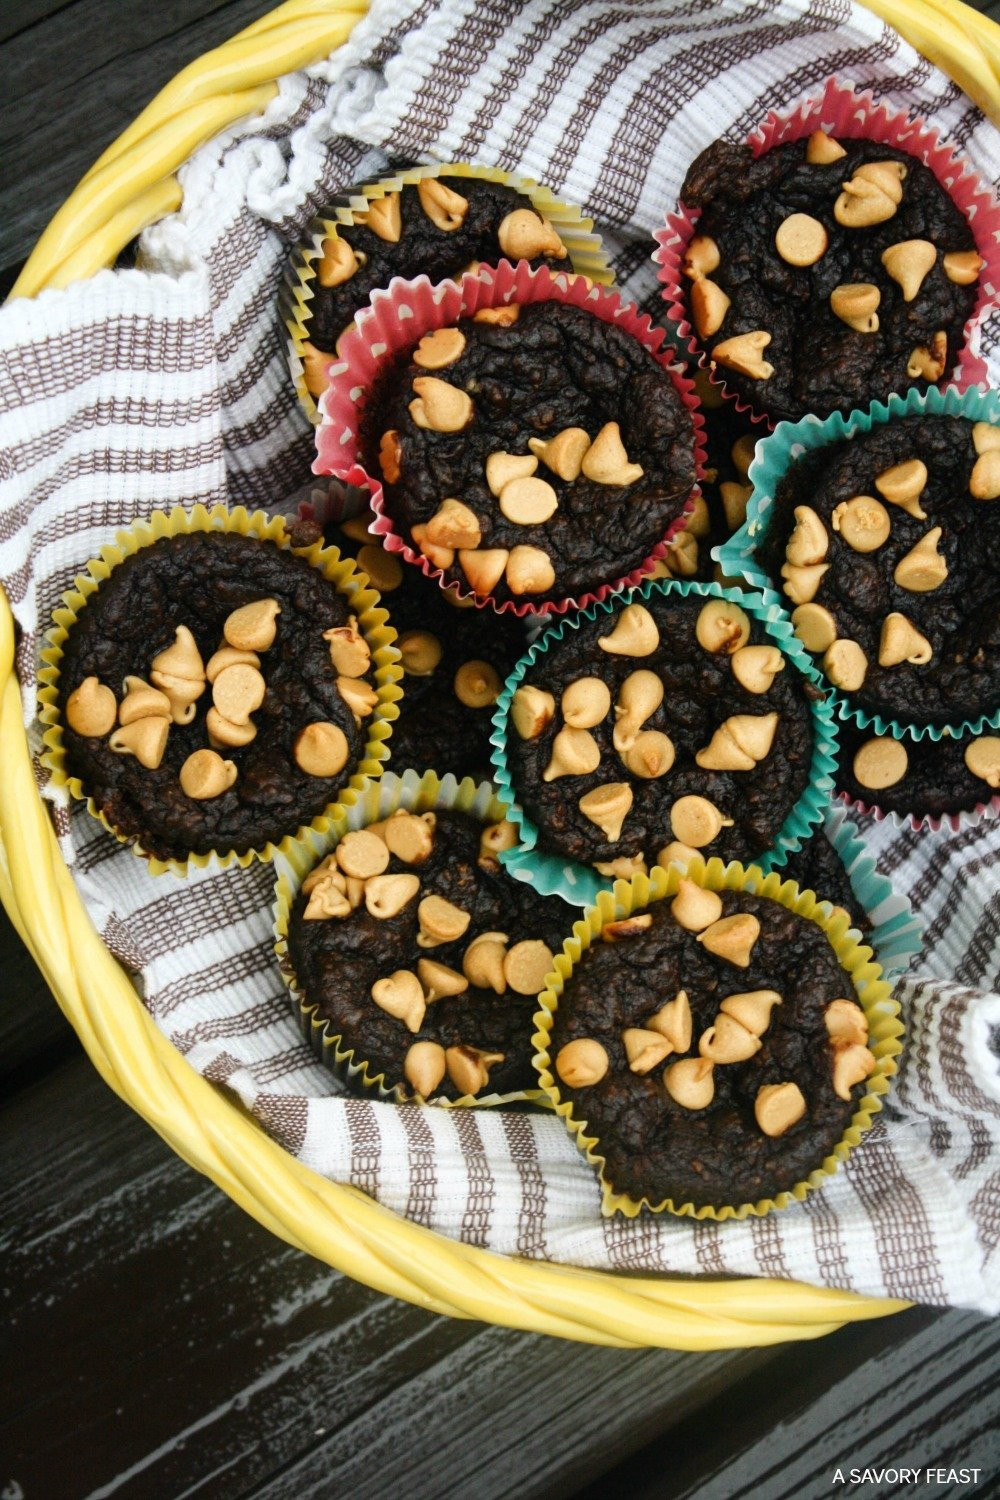 Busy mornings? Try a make-ahead, grab and go breakfast like these Chocolate Avocado Blender Muffins. Start your day the right way with these healthy muffins. Gluten free and low sugar! Perfect for back to school.